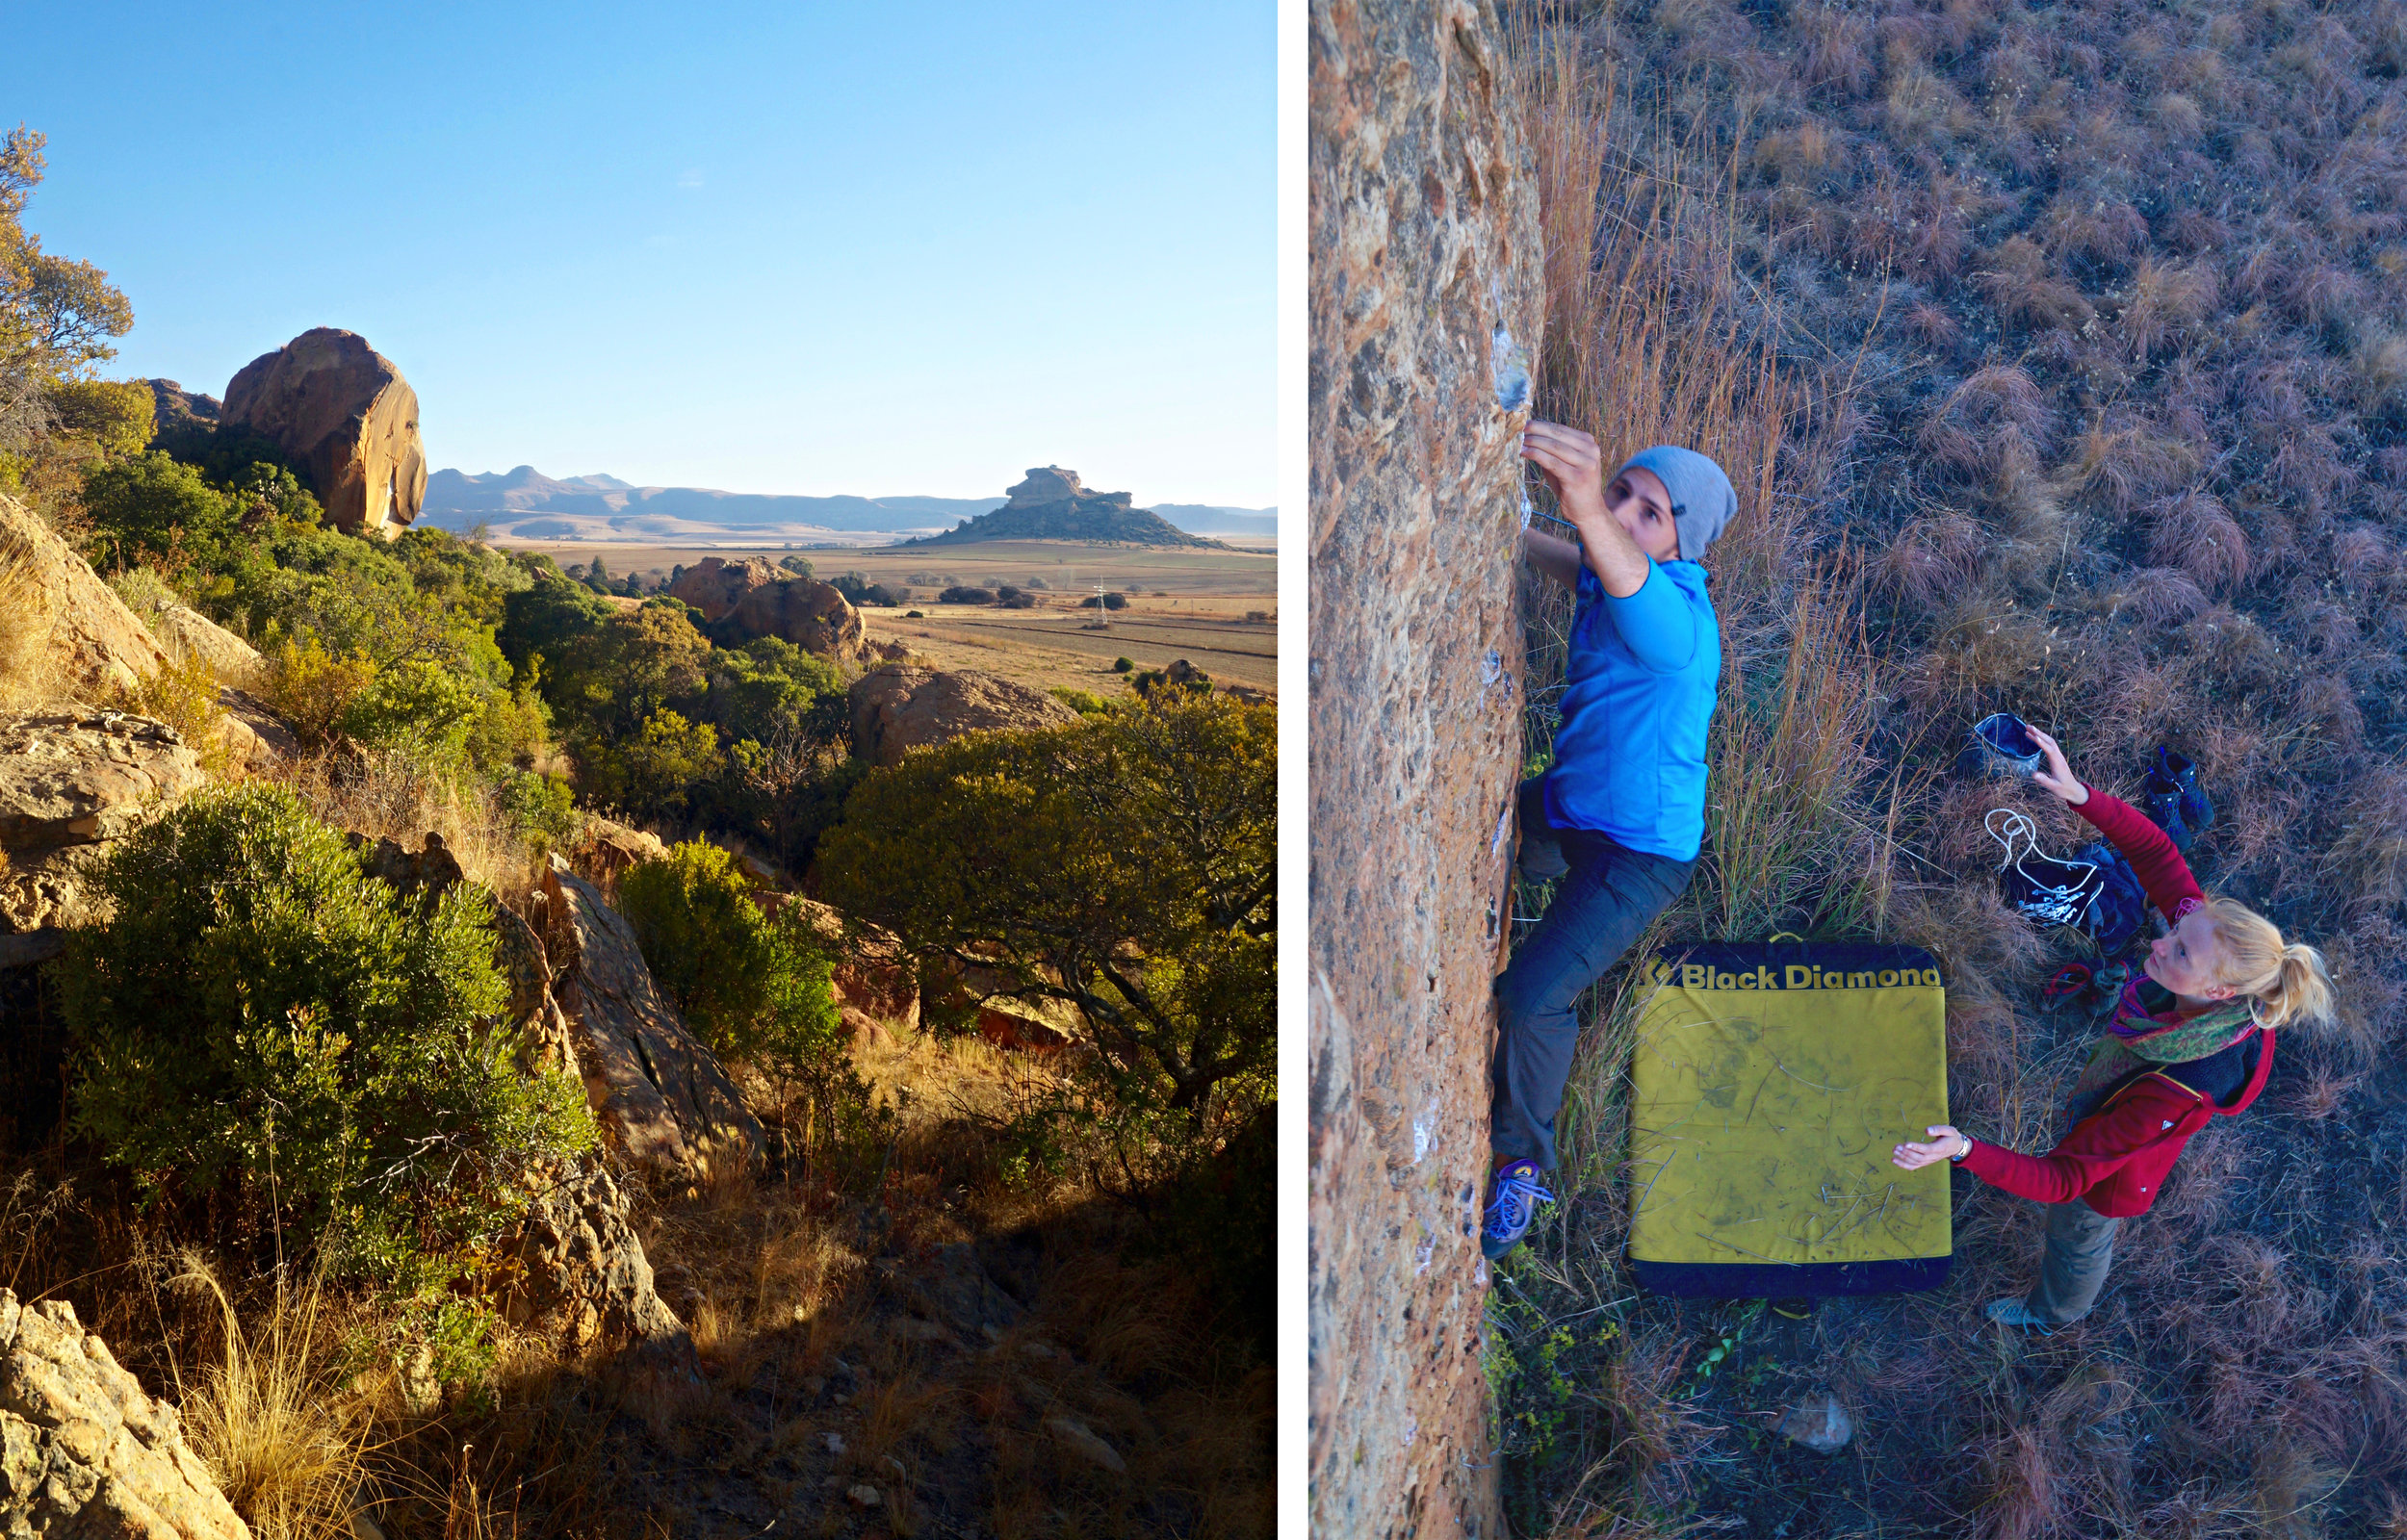 * Free State beauty                                                                  *Flo Muthwill crimpin on a virgin boulder